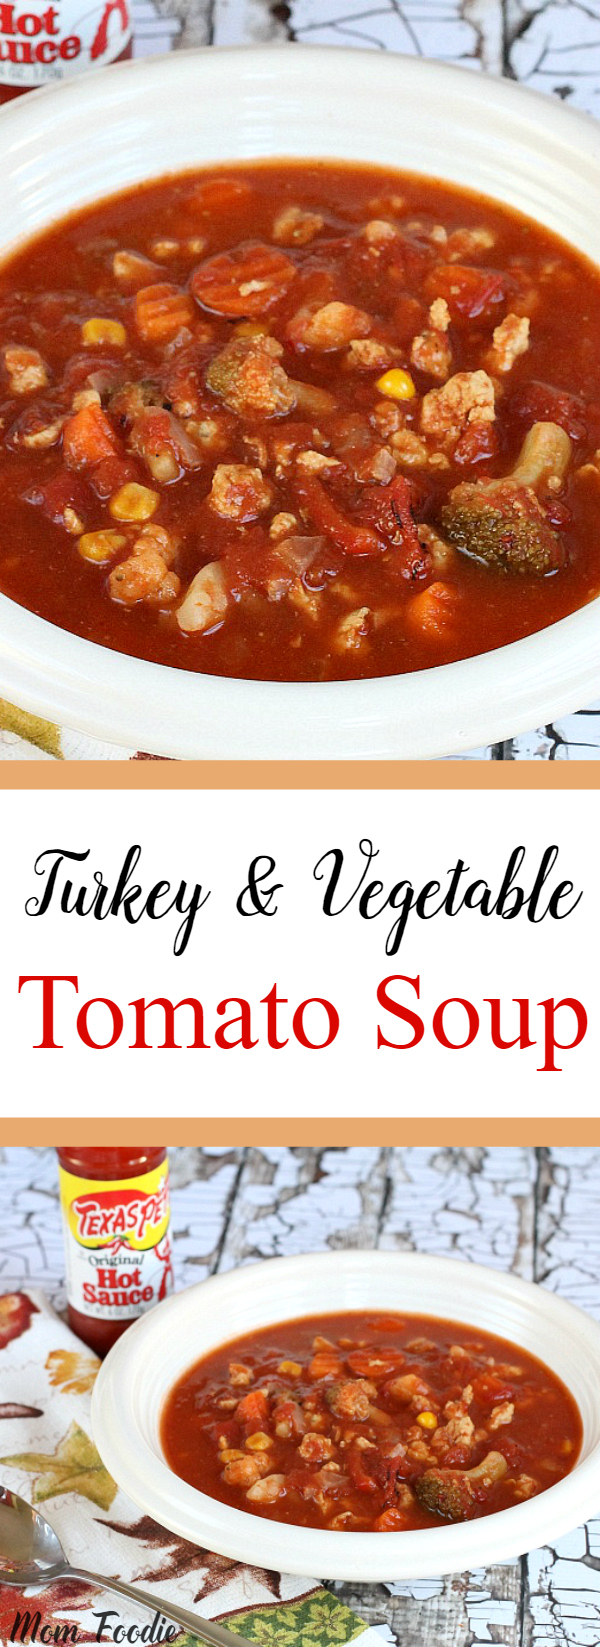 Turkey & Vegetable Tomato Soup